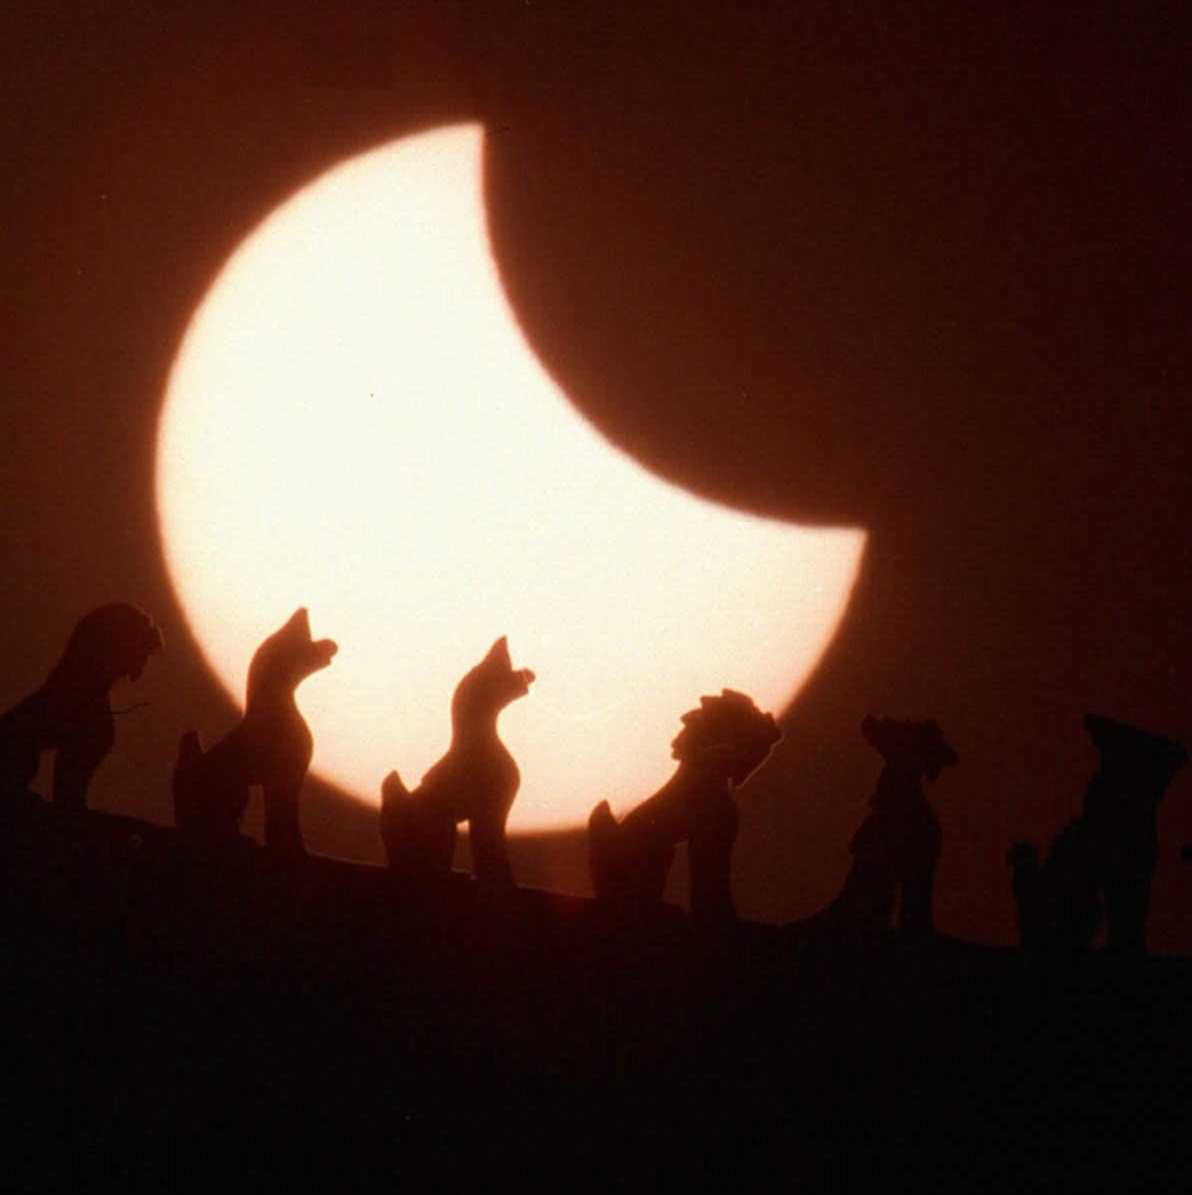 A solar eclipse seen from Beijing on March 9, 1997. Sky gazers in China and Russia got a double delight when the sun disappeared behind the moon in a total solar eclipse that coincided with a rare view of the bright Hale-Bopp comet.